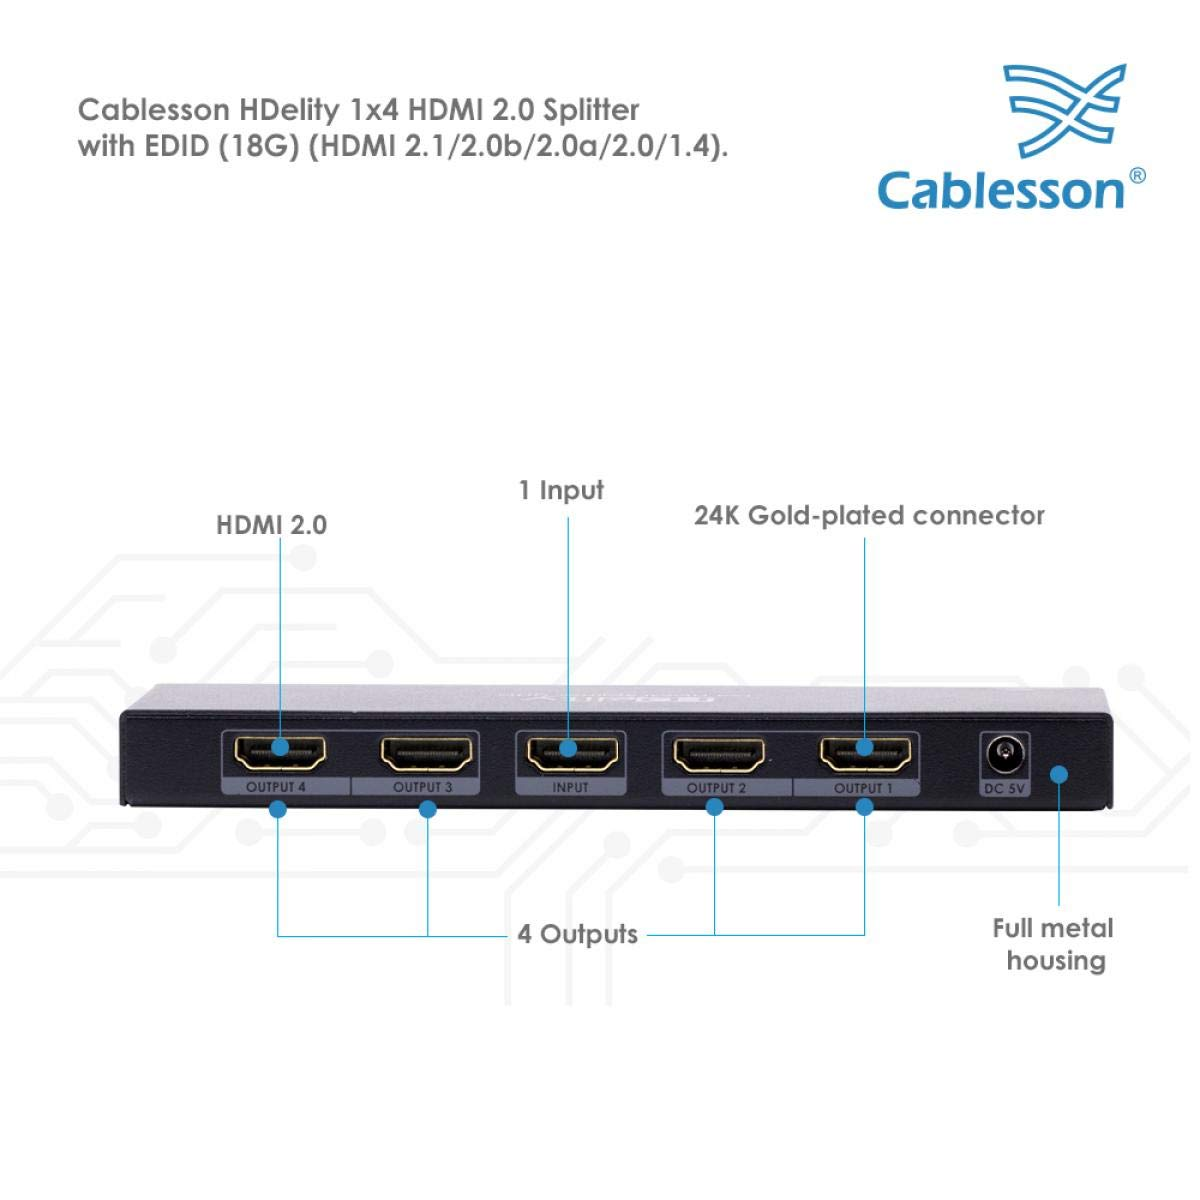 amazon com cablesson hdelity 1 x 4 hdmi 2 0 splitter 1 input 4 rh amazon com